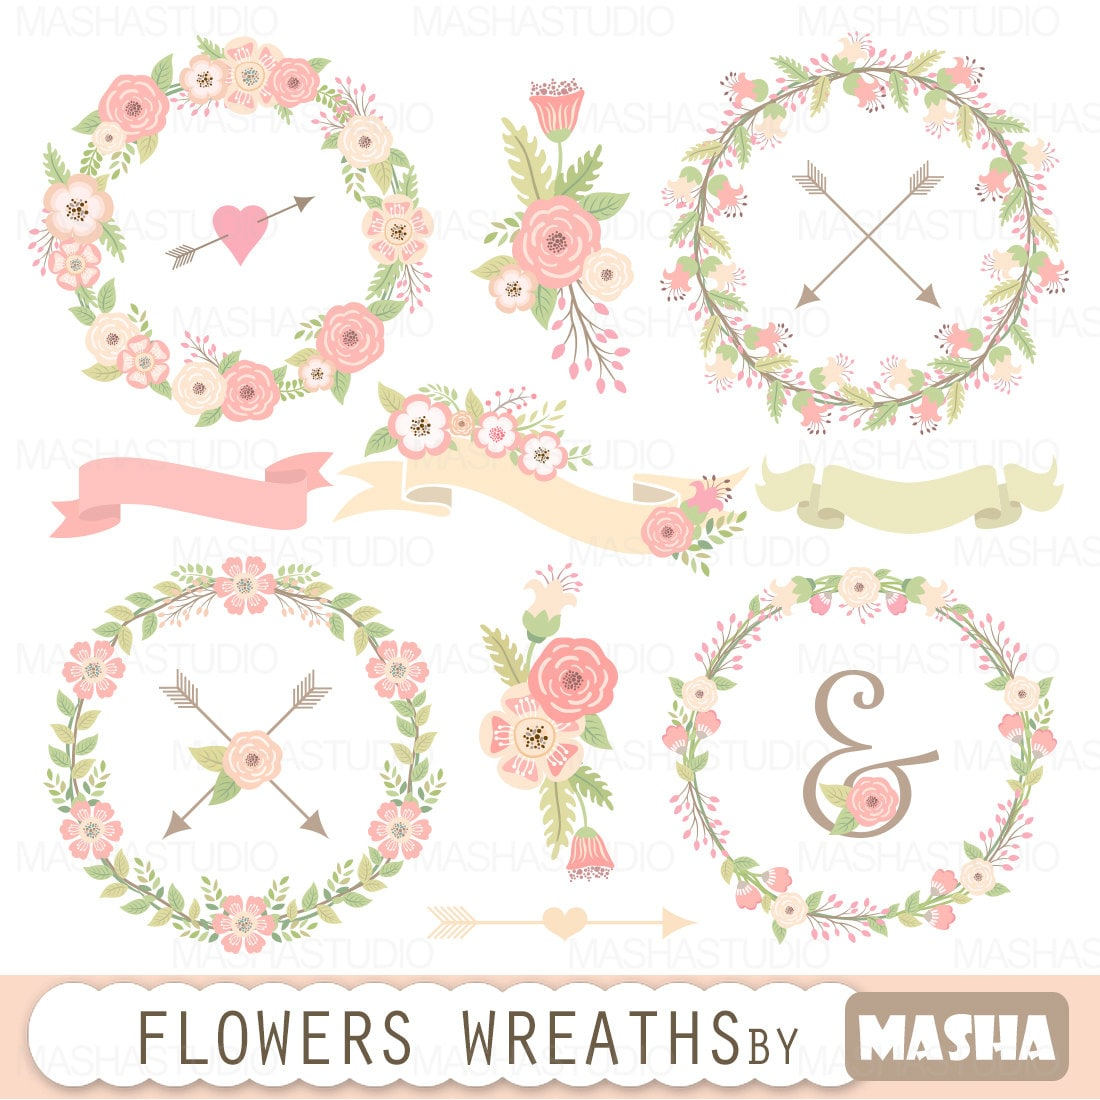 Wedding Flowers Wreaths Clipart FLOWERS WREATHS With Floral Wreaths Clip Art Wedding Clipart